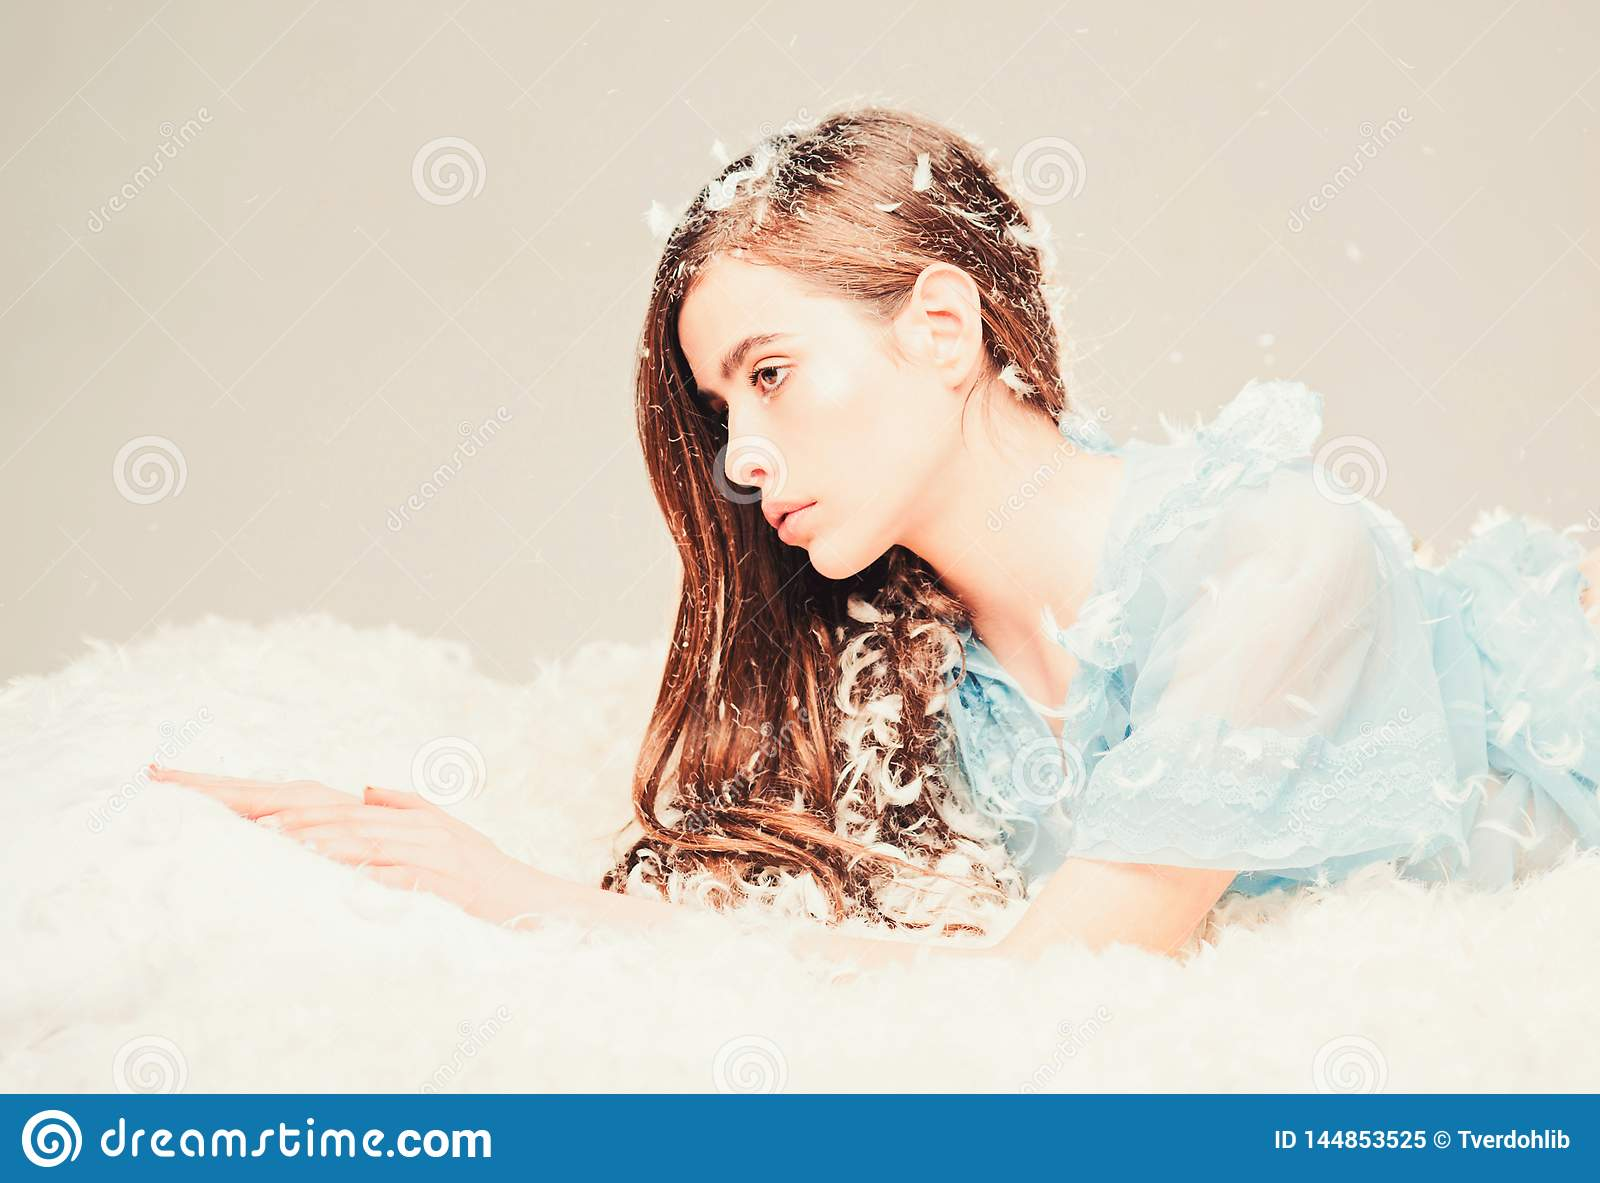 Woman with long hair in tender pajama relaxing. Lady in transparent blue nightie lay on bed, grey background. Girl on